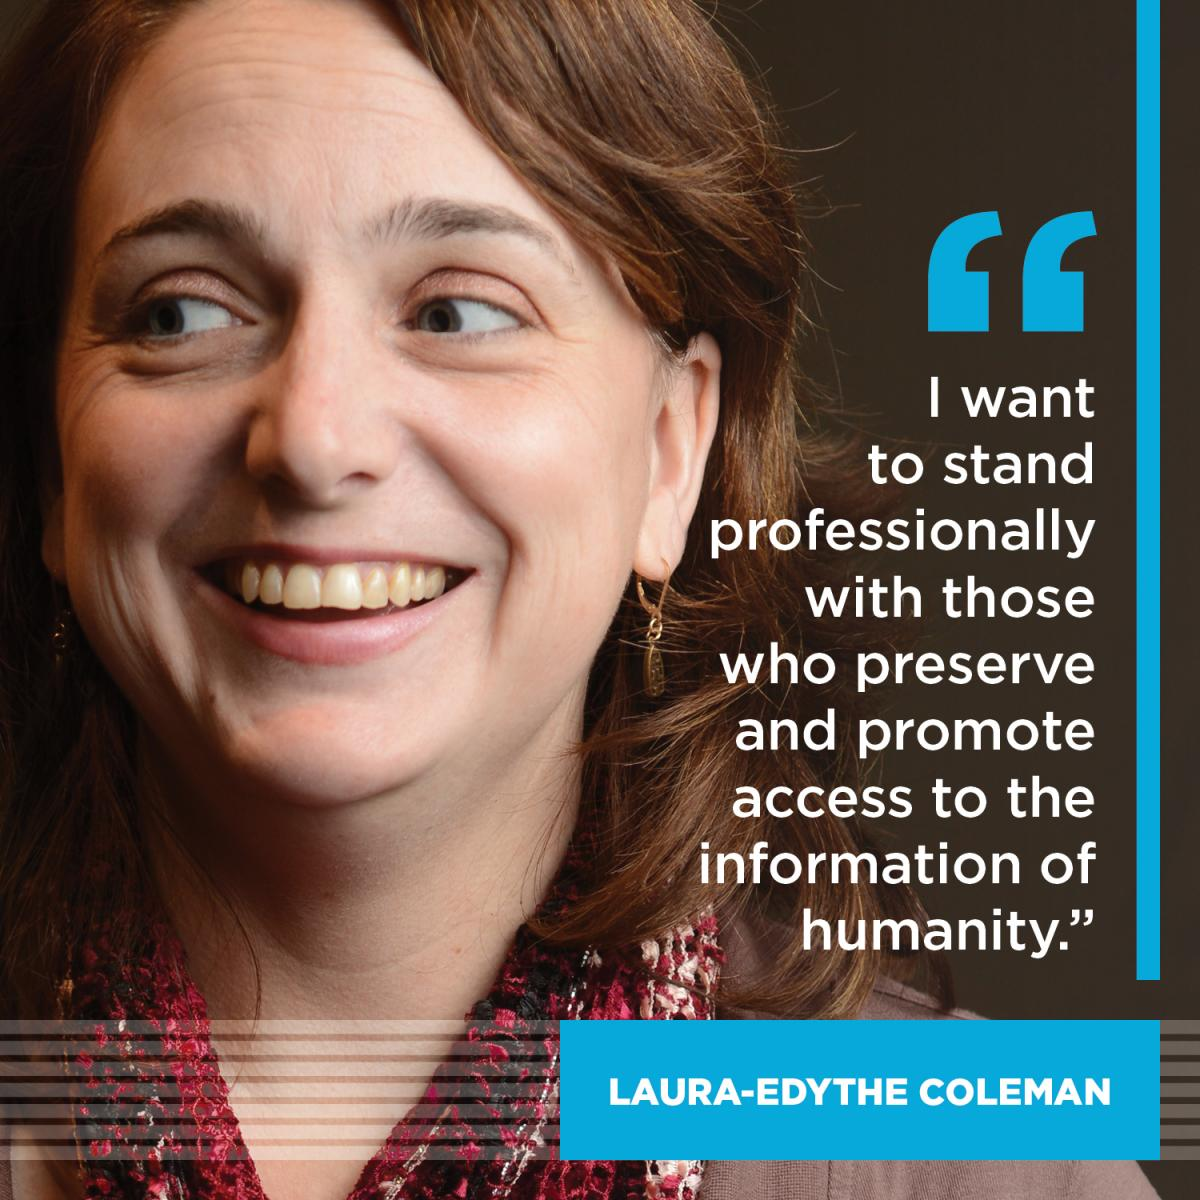 I want to stand professionally with those who preserve and promote access to the information of humanity. -Laura-Edythe Coleman